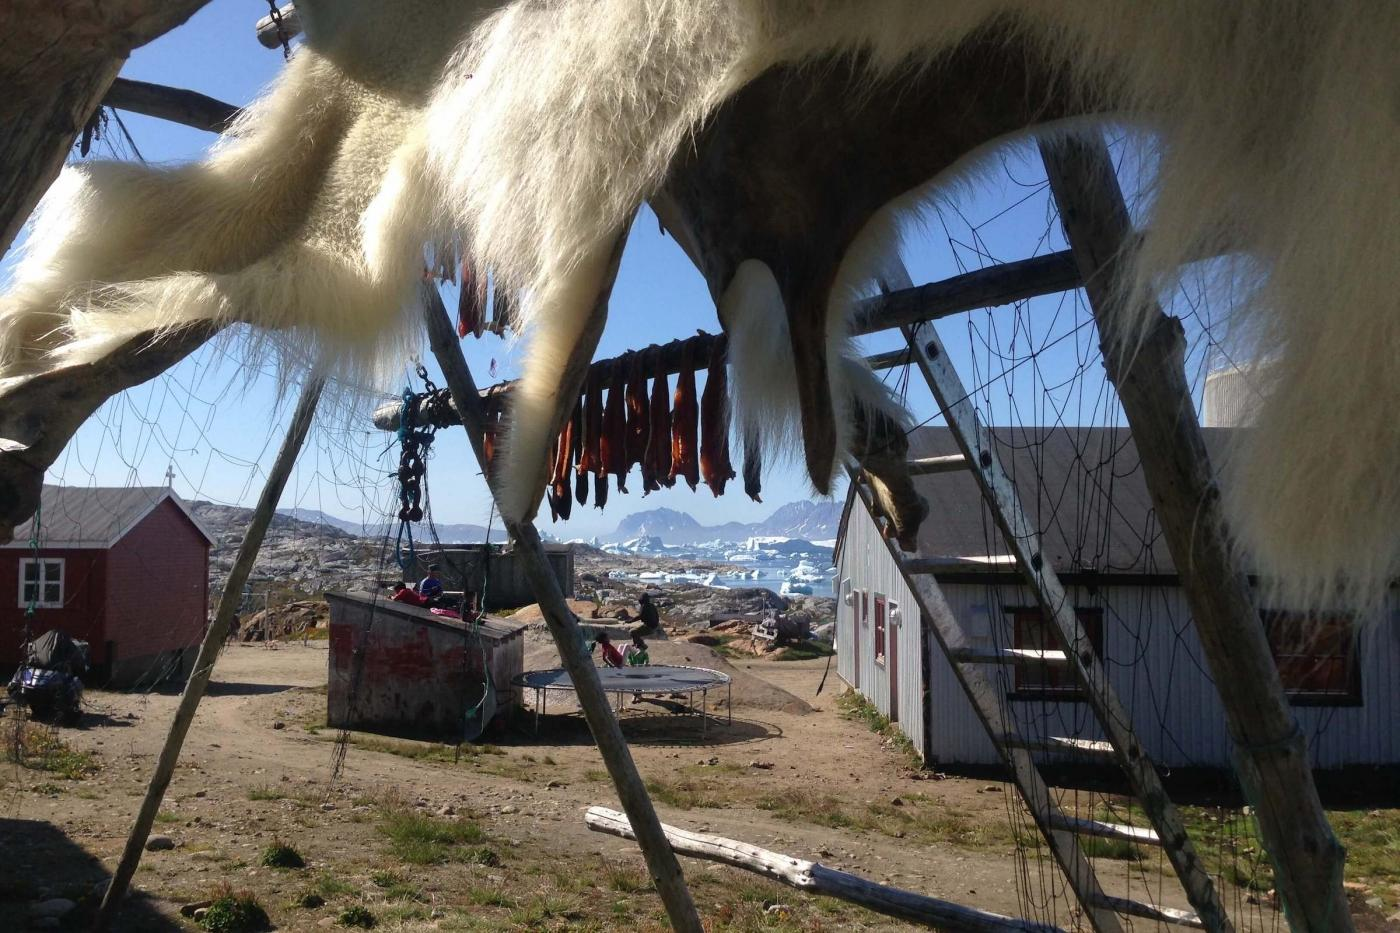 Early summer , june in the village Tiniteqilaaq. Polarbearskin hanging to dry. Photo by Line Kristiansen